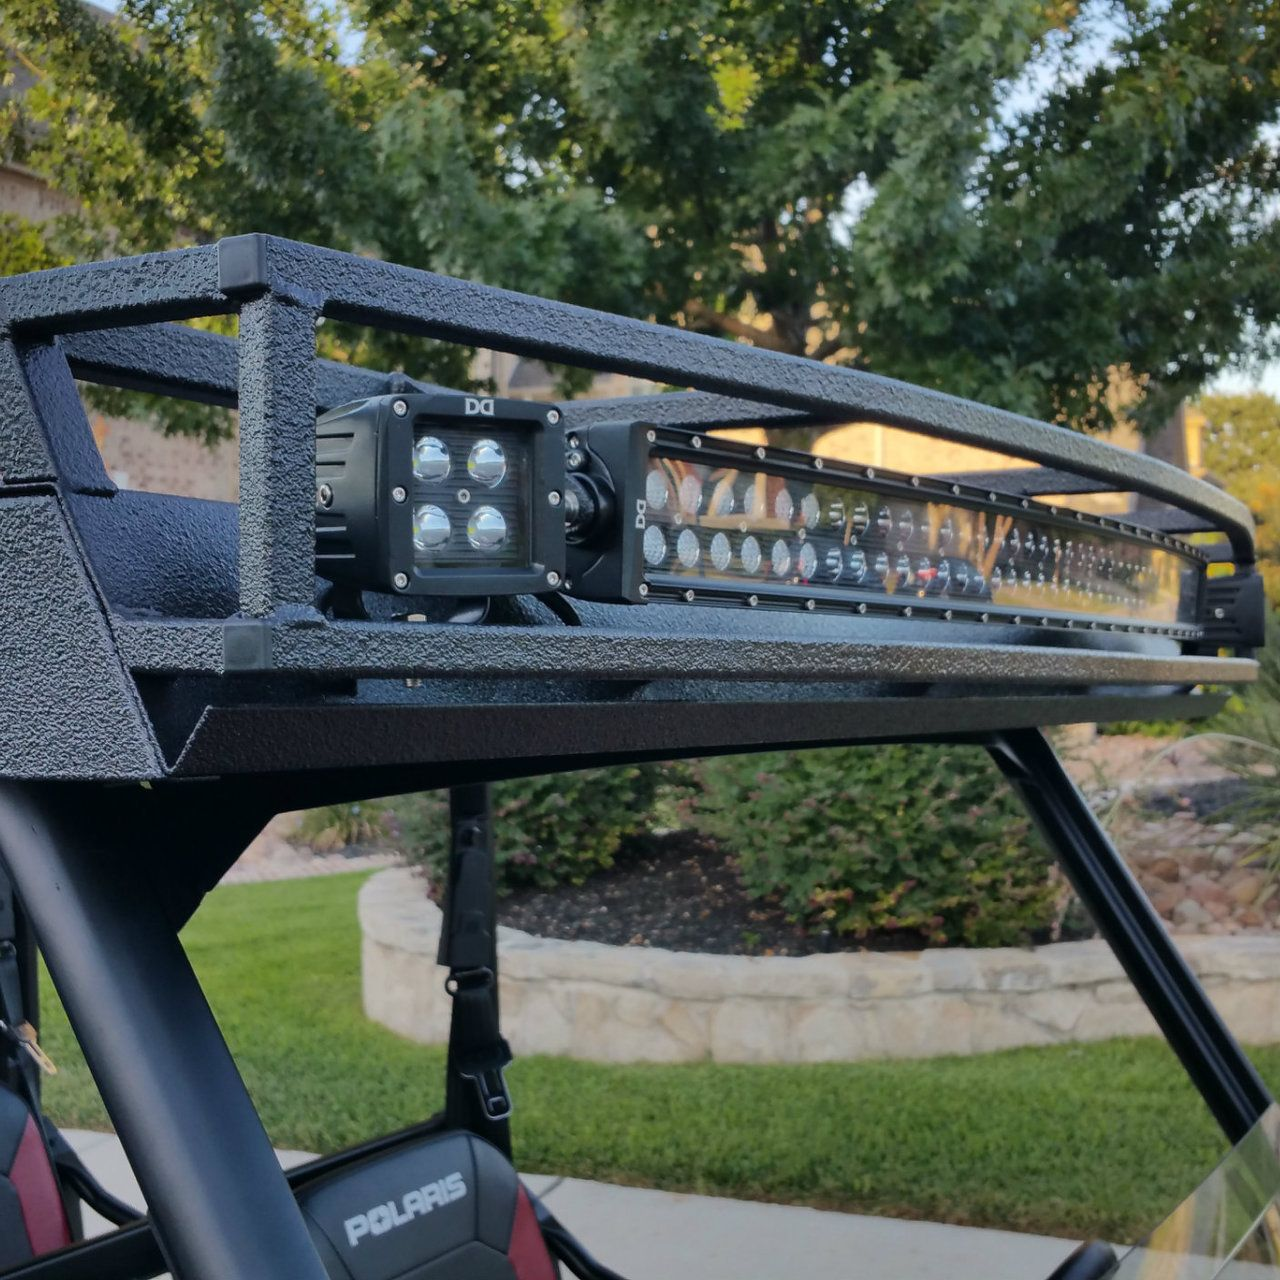 Ranch Armor Polaris Ranger Crew 900 One Piece Roof W Led Lights Within Size  1280 X 720 Auf Polaris Utv Metal Roof